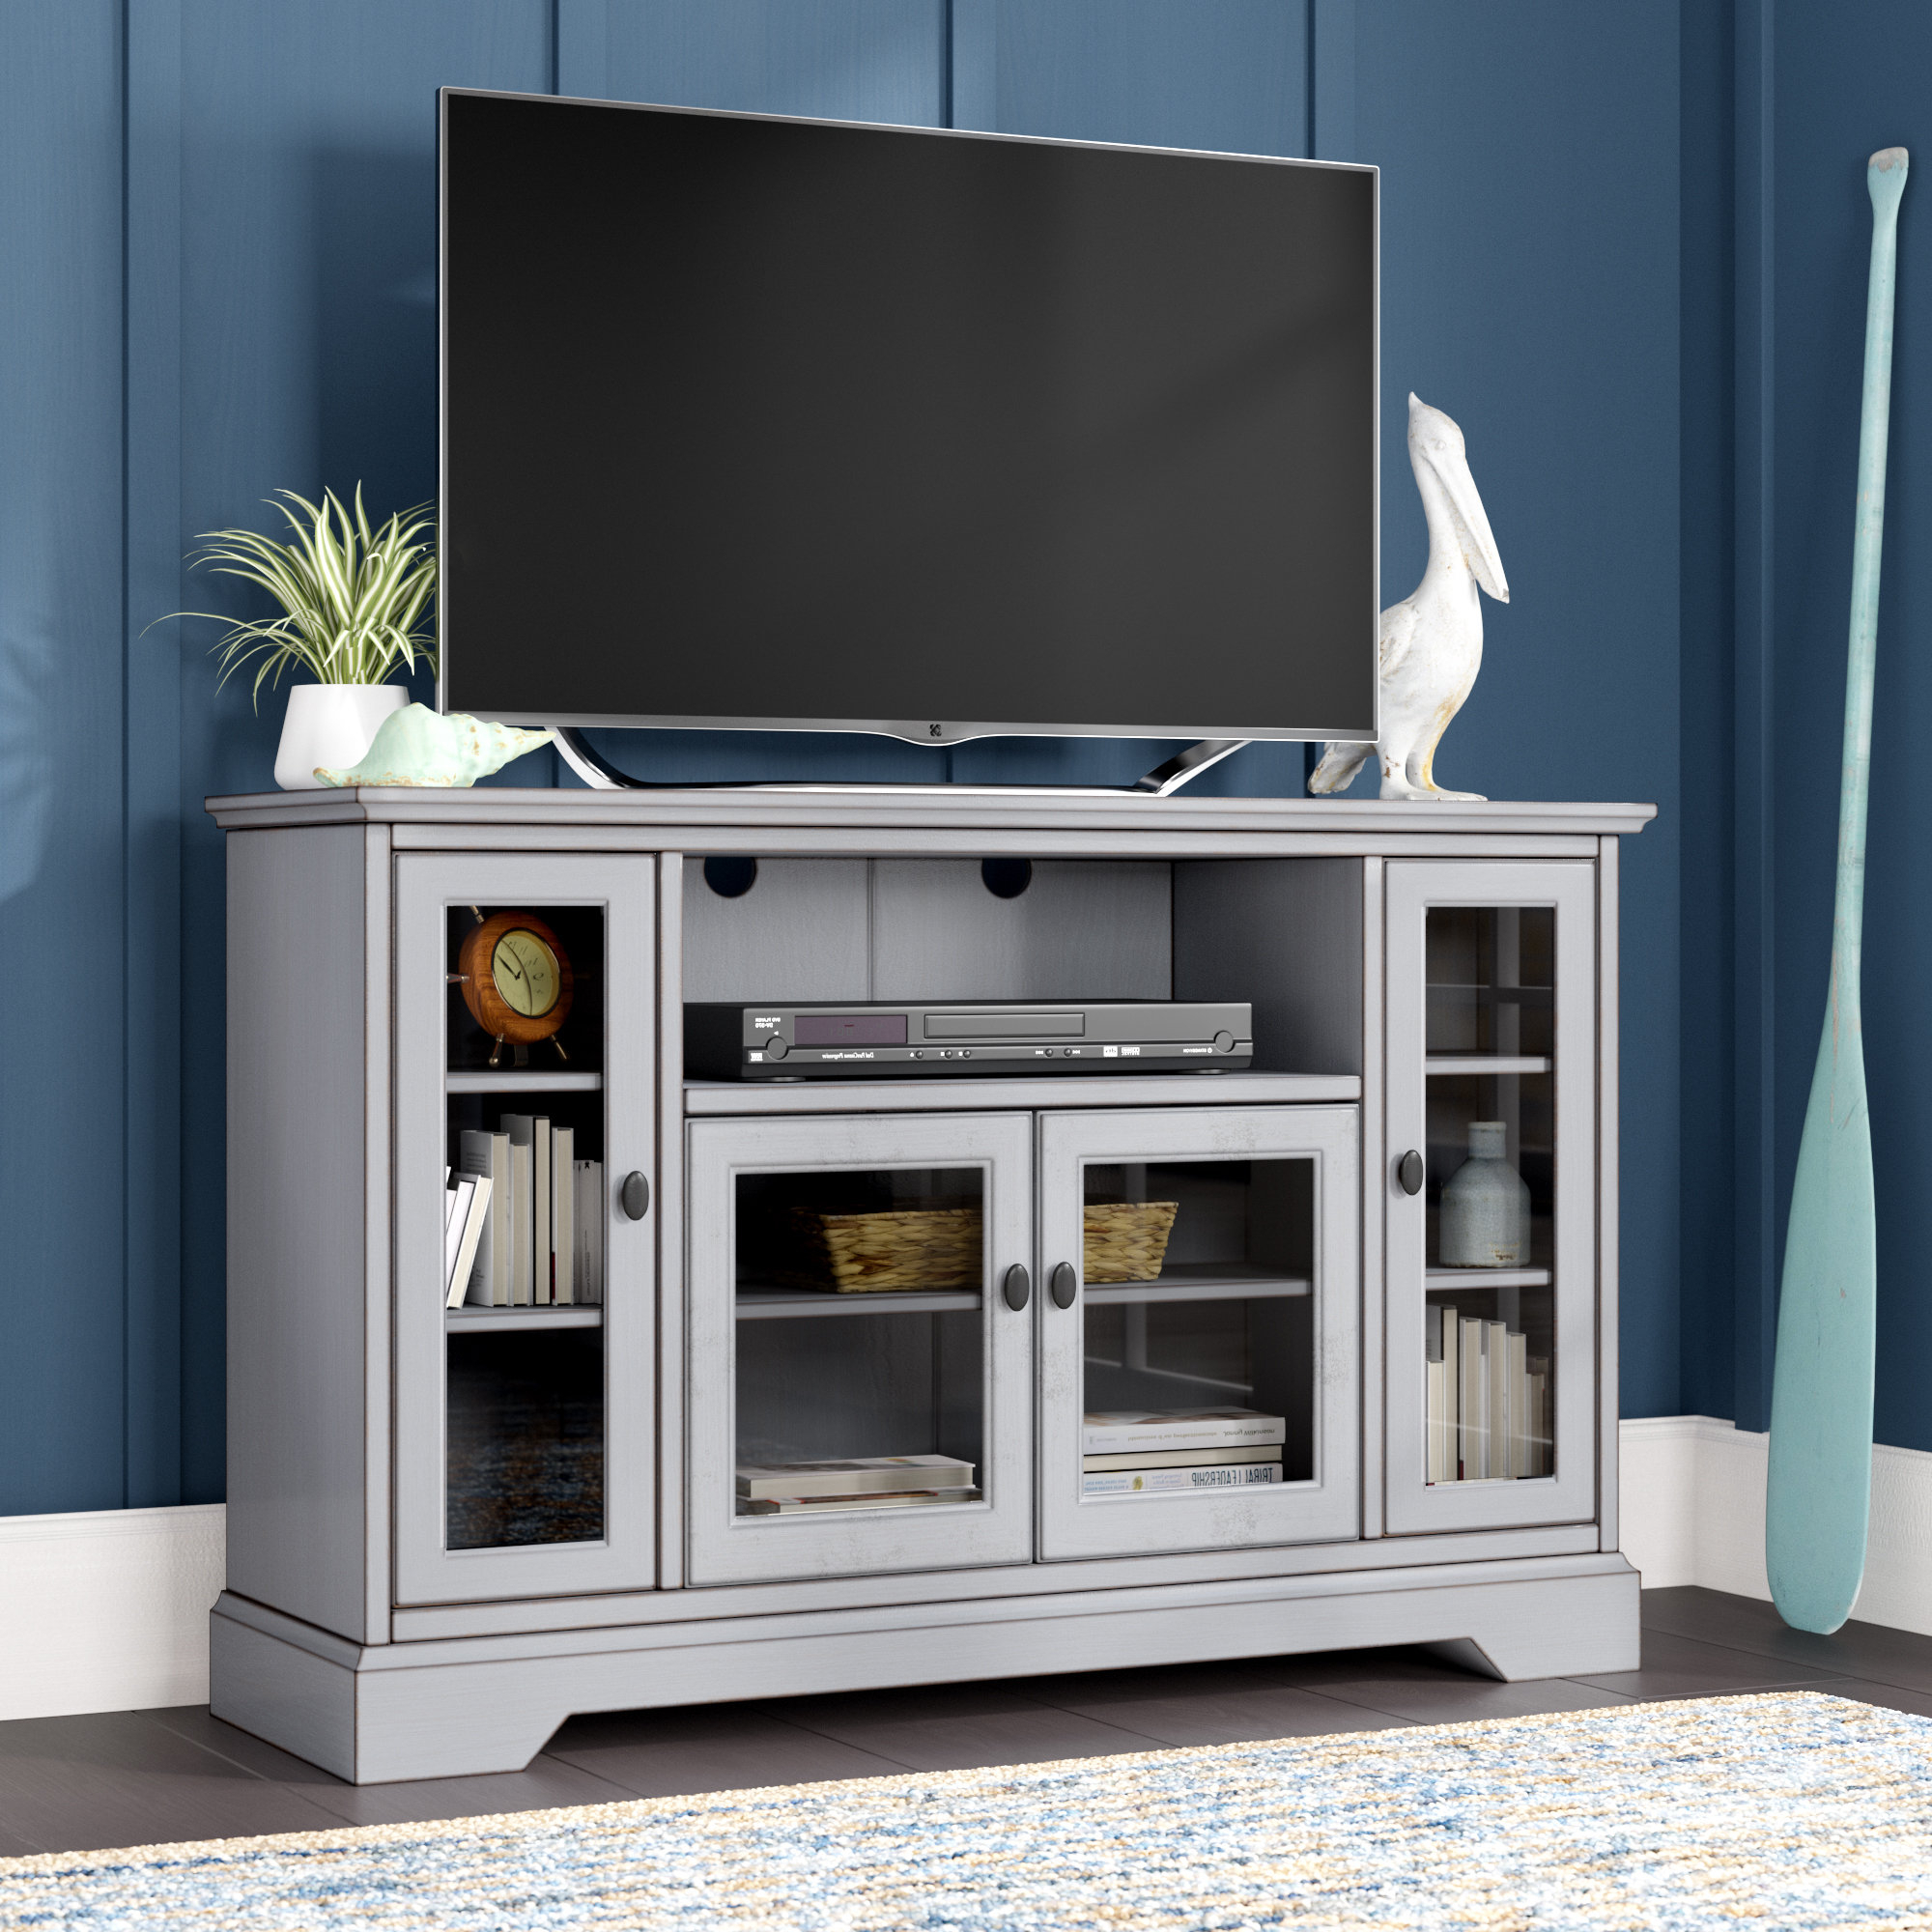 Tall Tv Stands You'll Love (View 18 of 20)